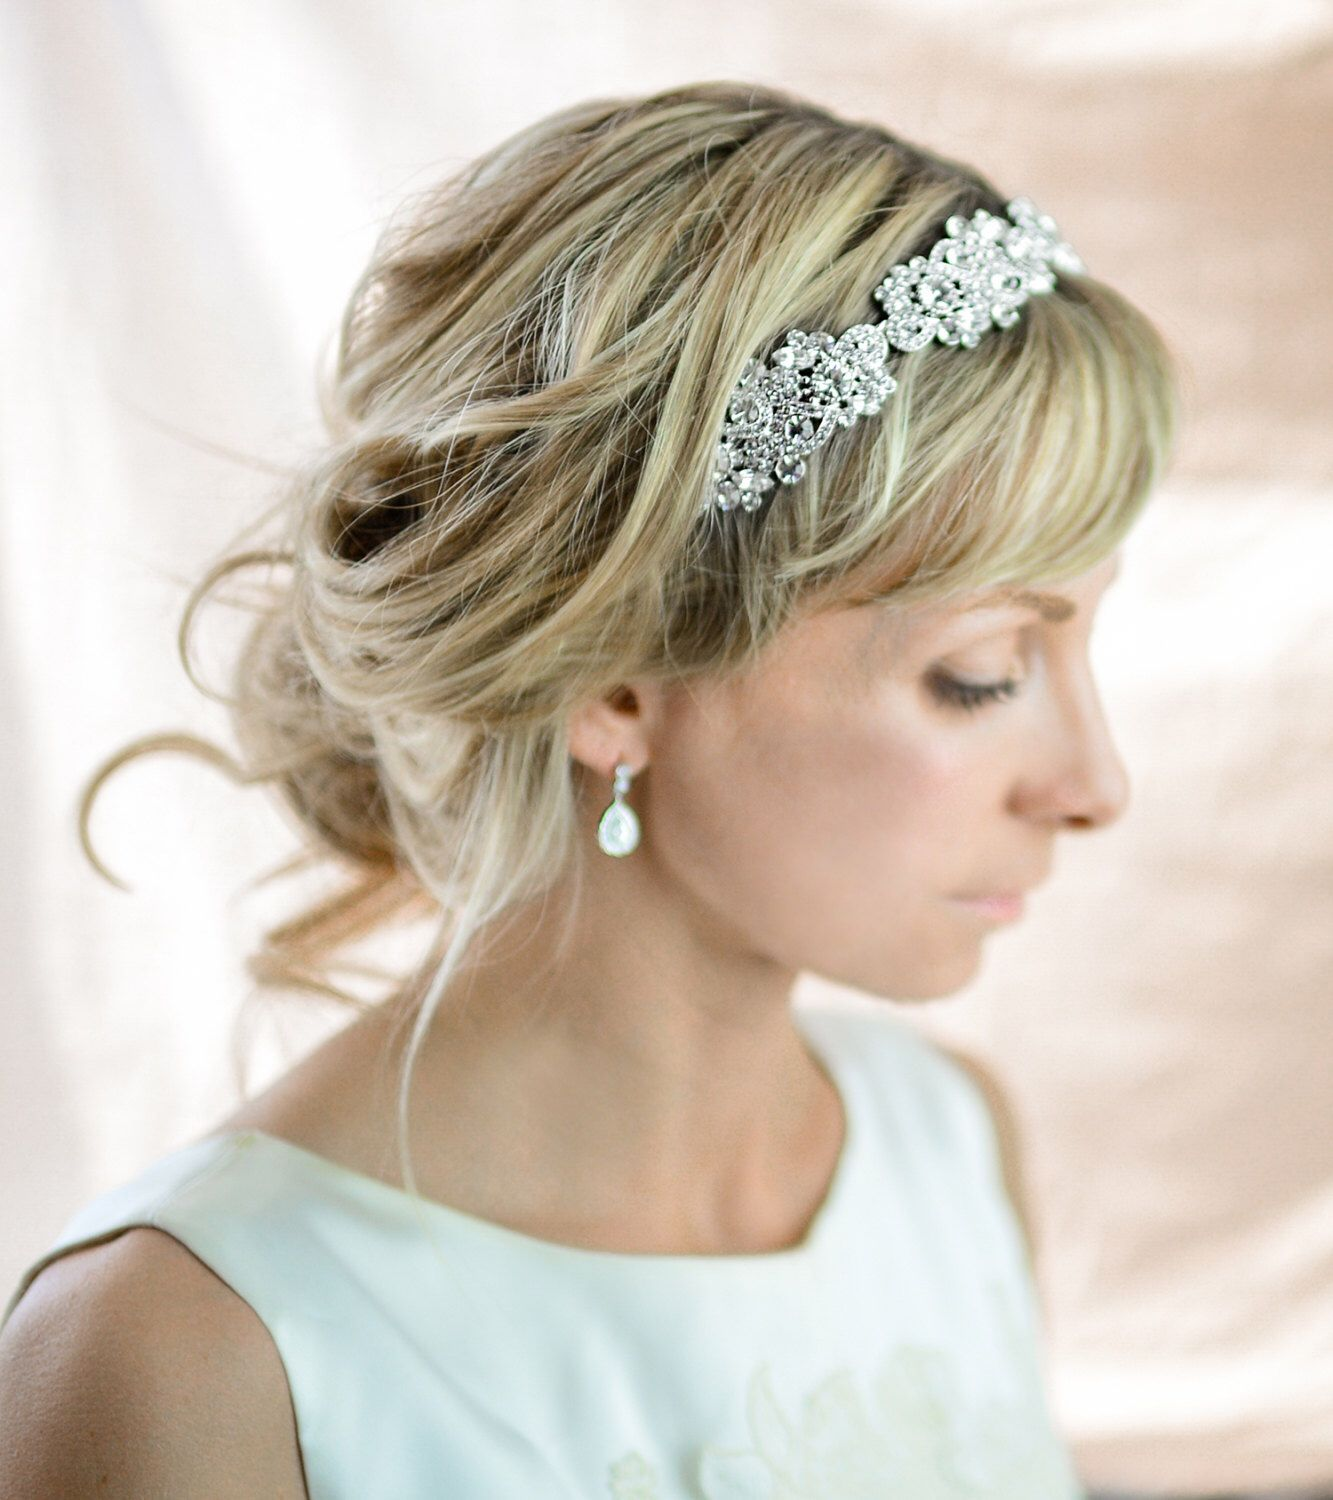 pin by christine easton on wedding hair & veils | wedding